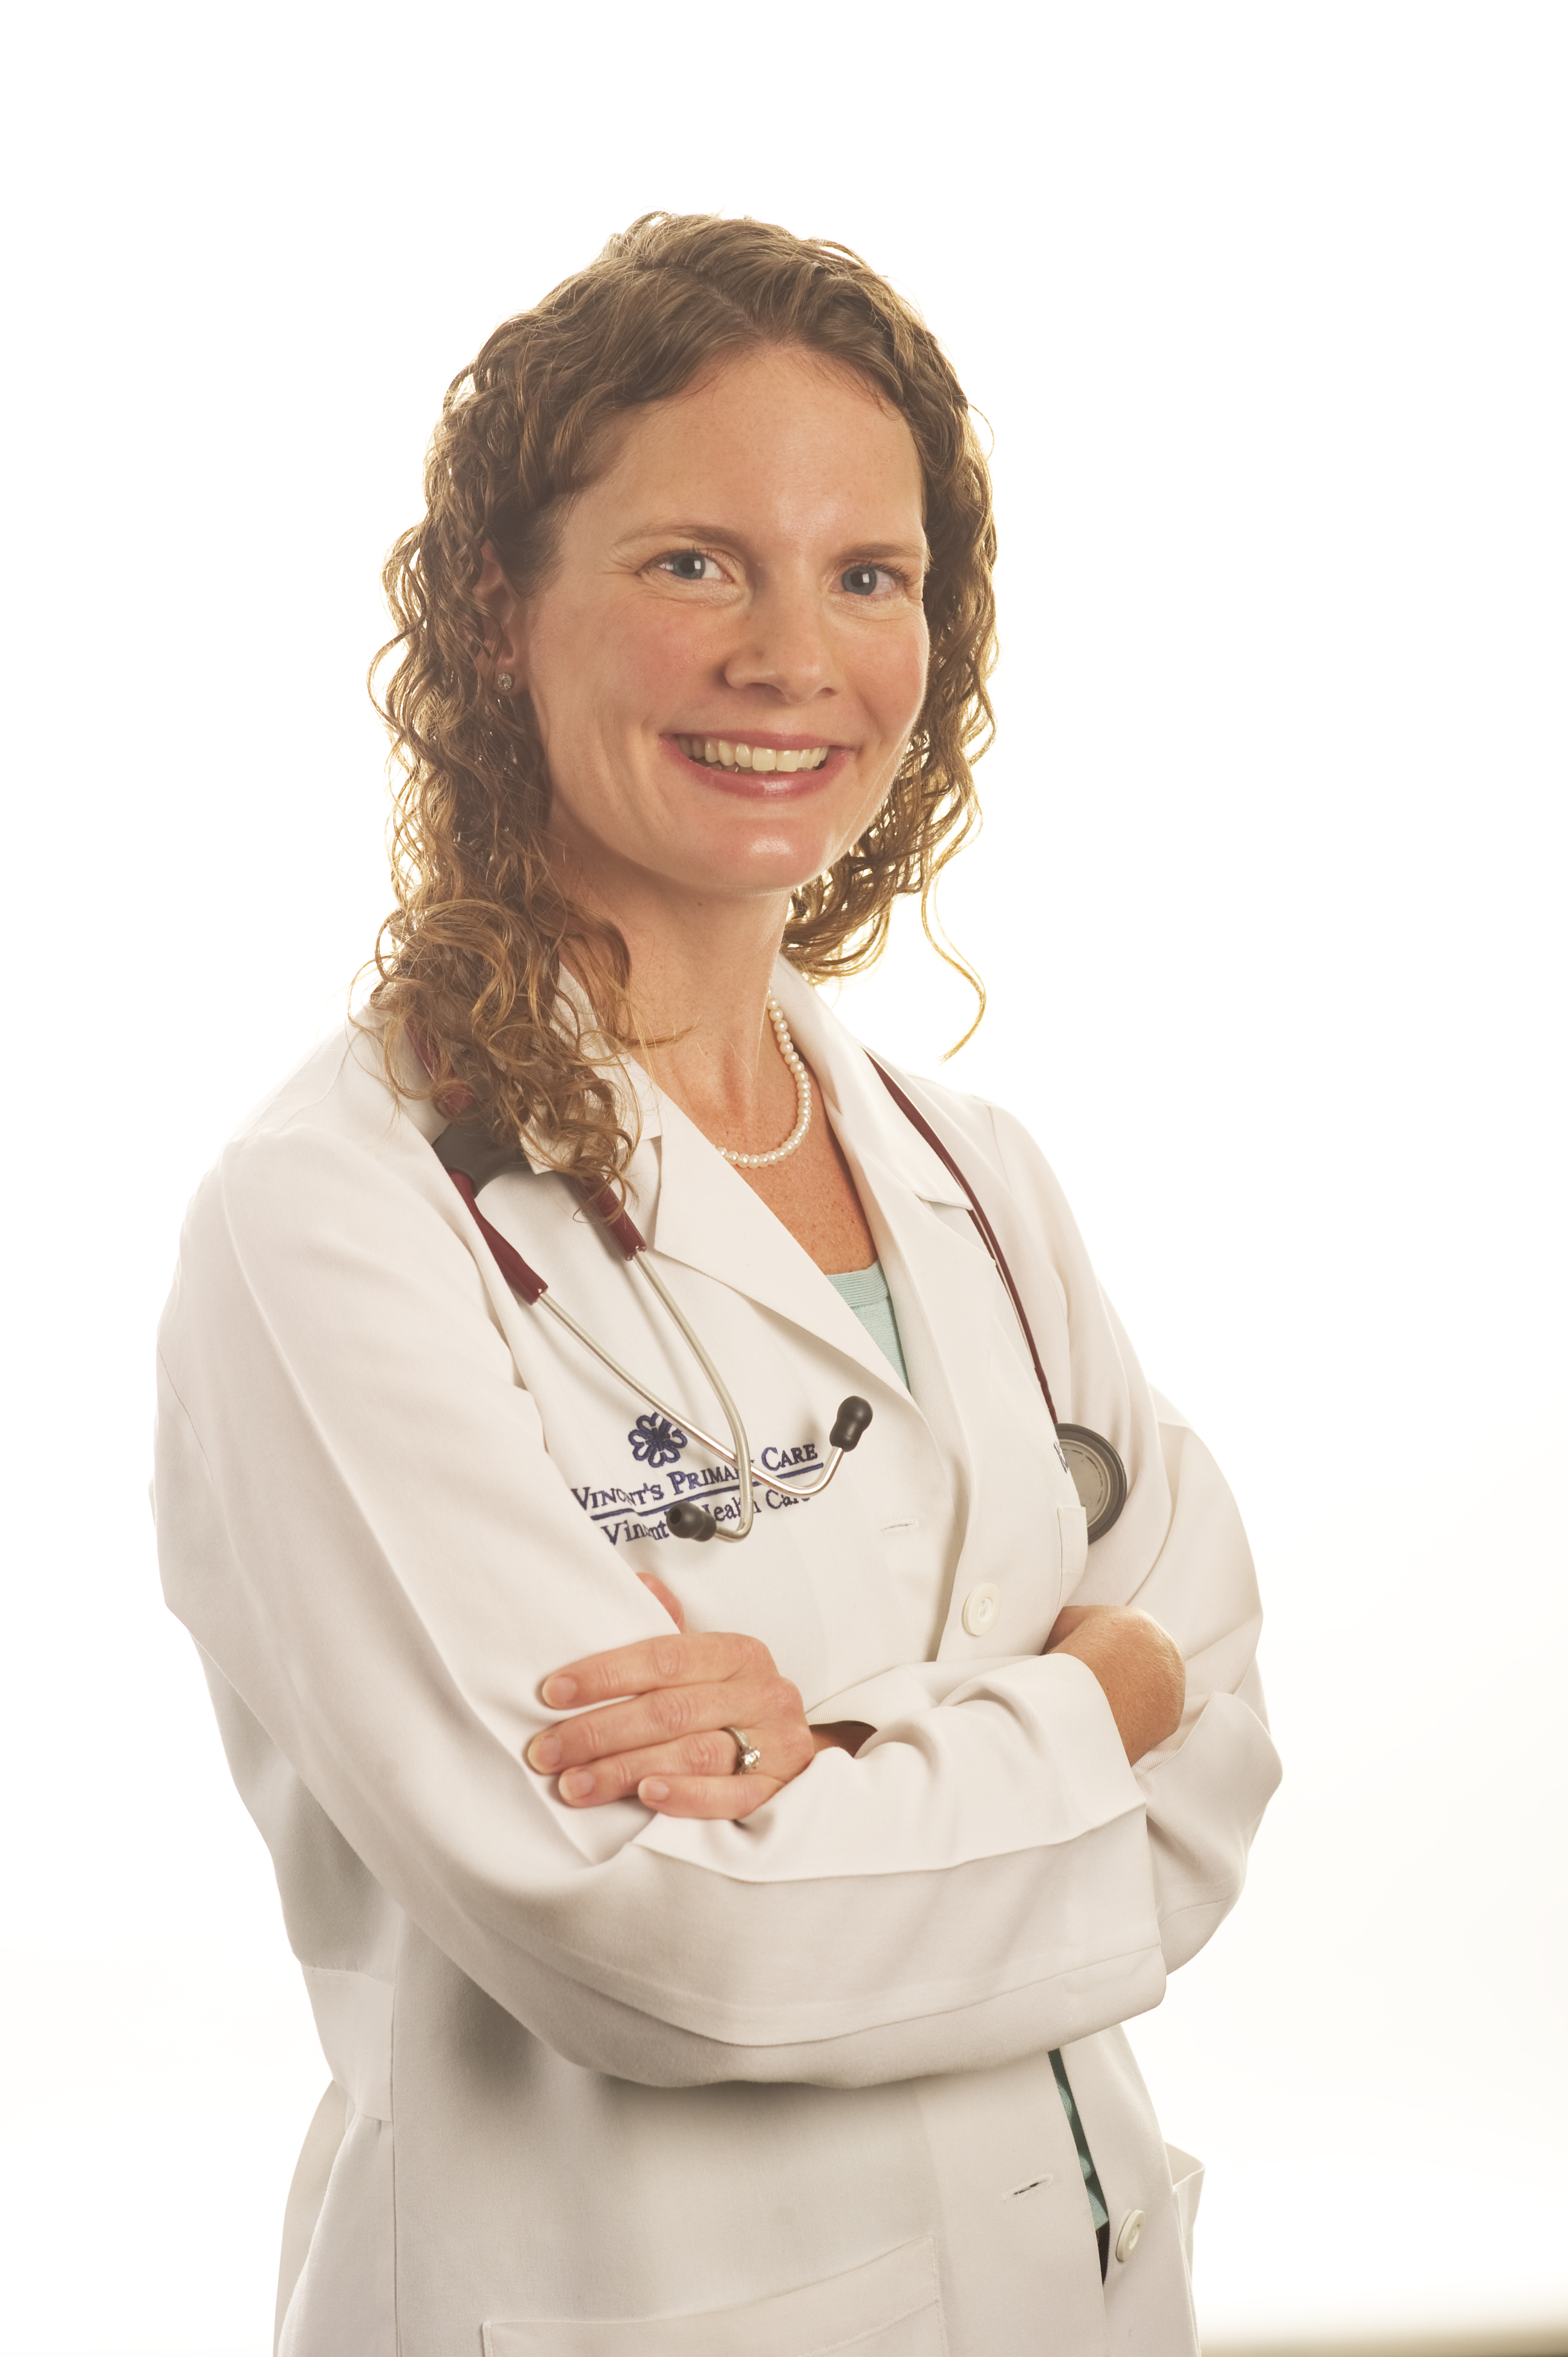 Mary Yoder, MD